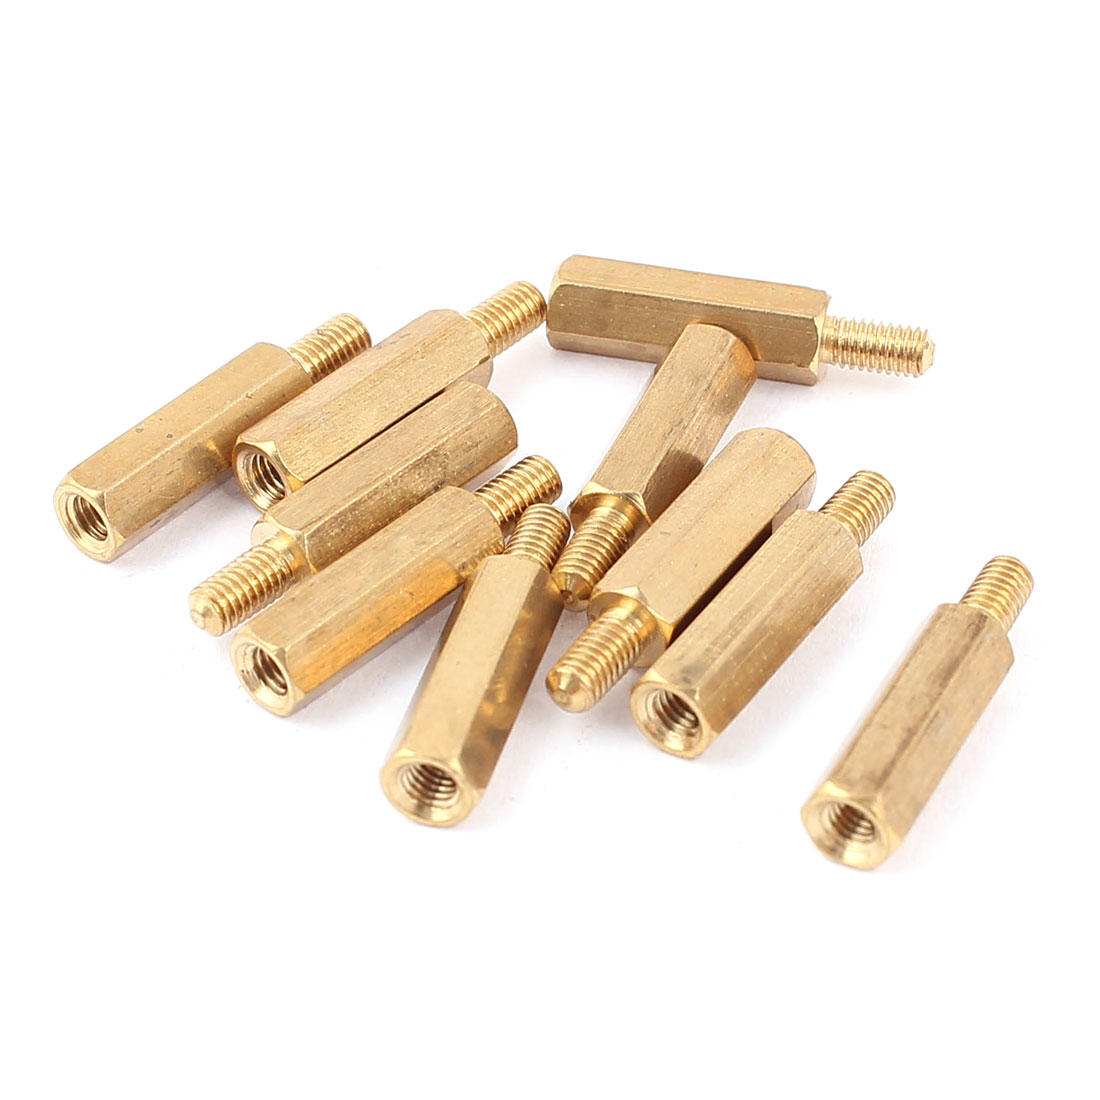 10 Pcs 15mm+6mm M3 Male to Female Brass Hex Standoff Spacer Pillar for PCB Board